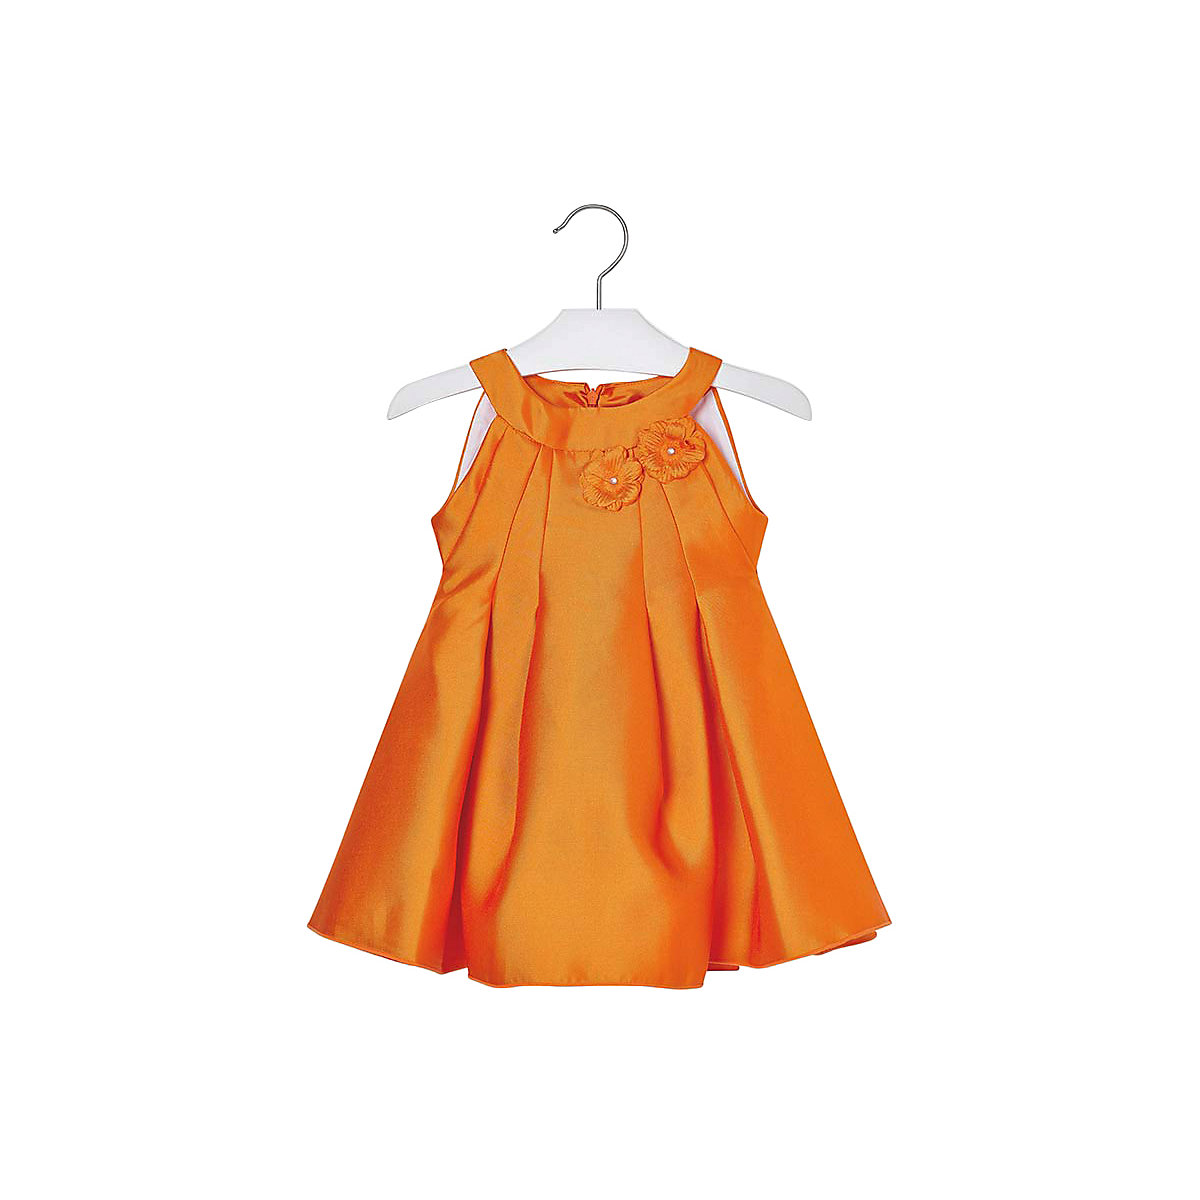 MAYORAL Dresses 10687136 Girl Children Party fitted pleated skirt Orange Polyester Preppy Style Solid Knee-Length Sleeveless Sleeve